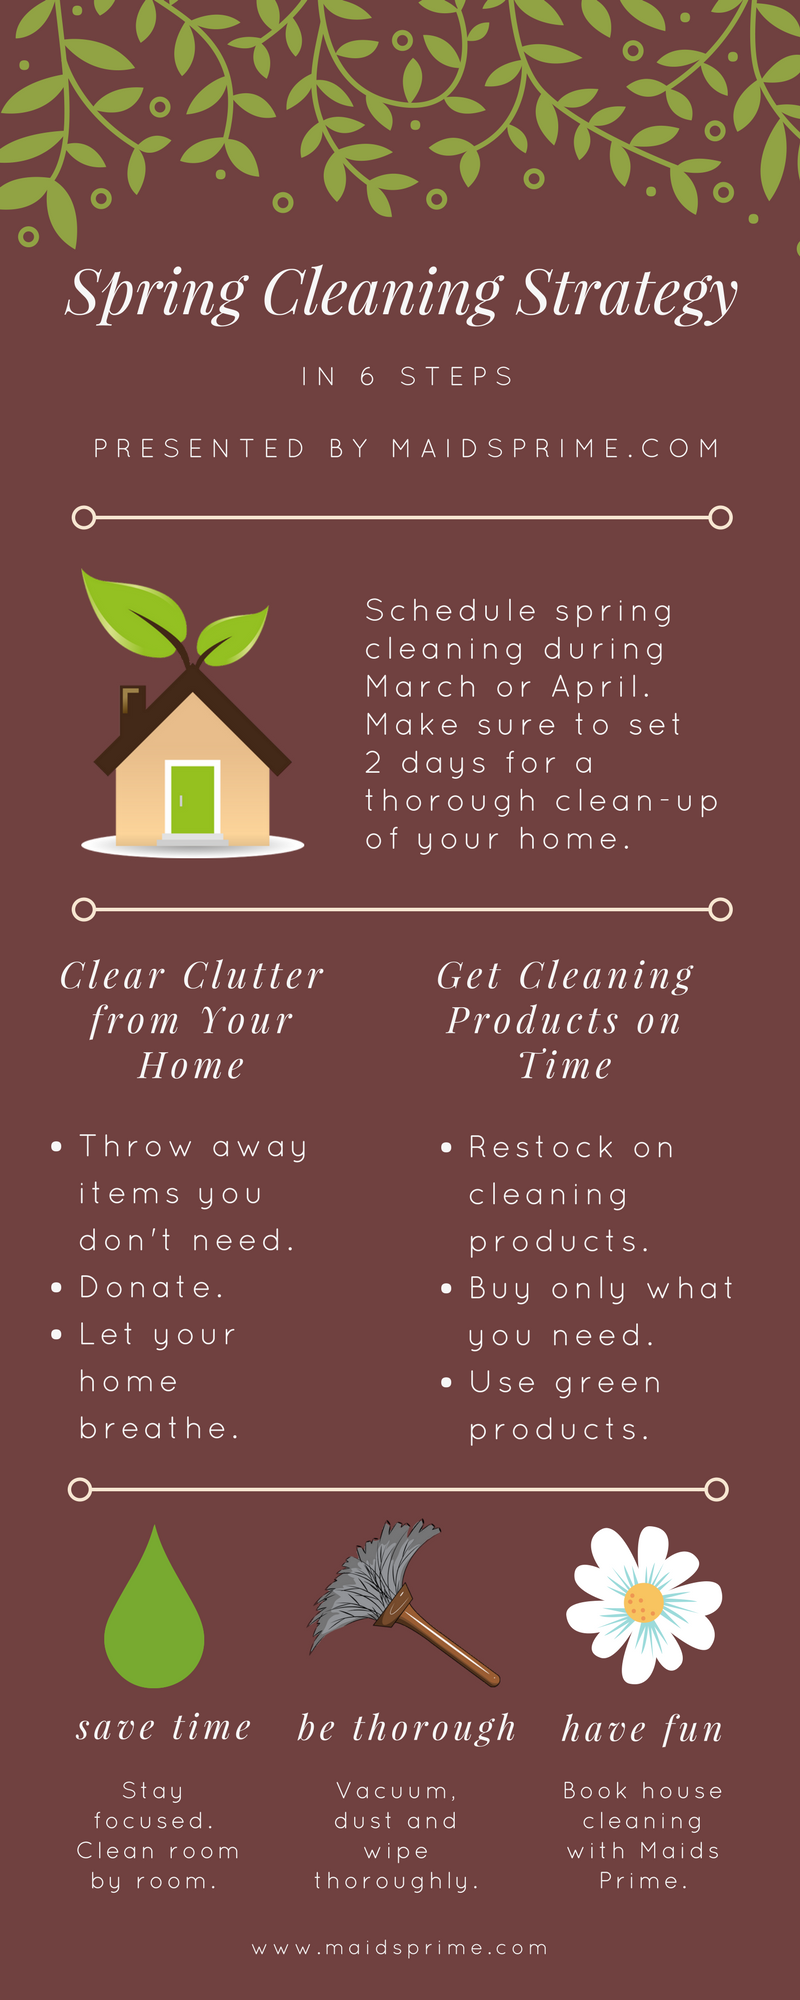 Spring Cleaning List - Tips & Tricks